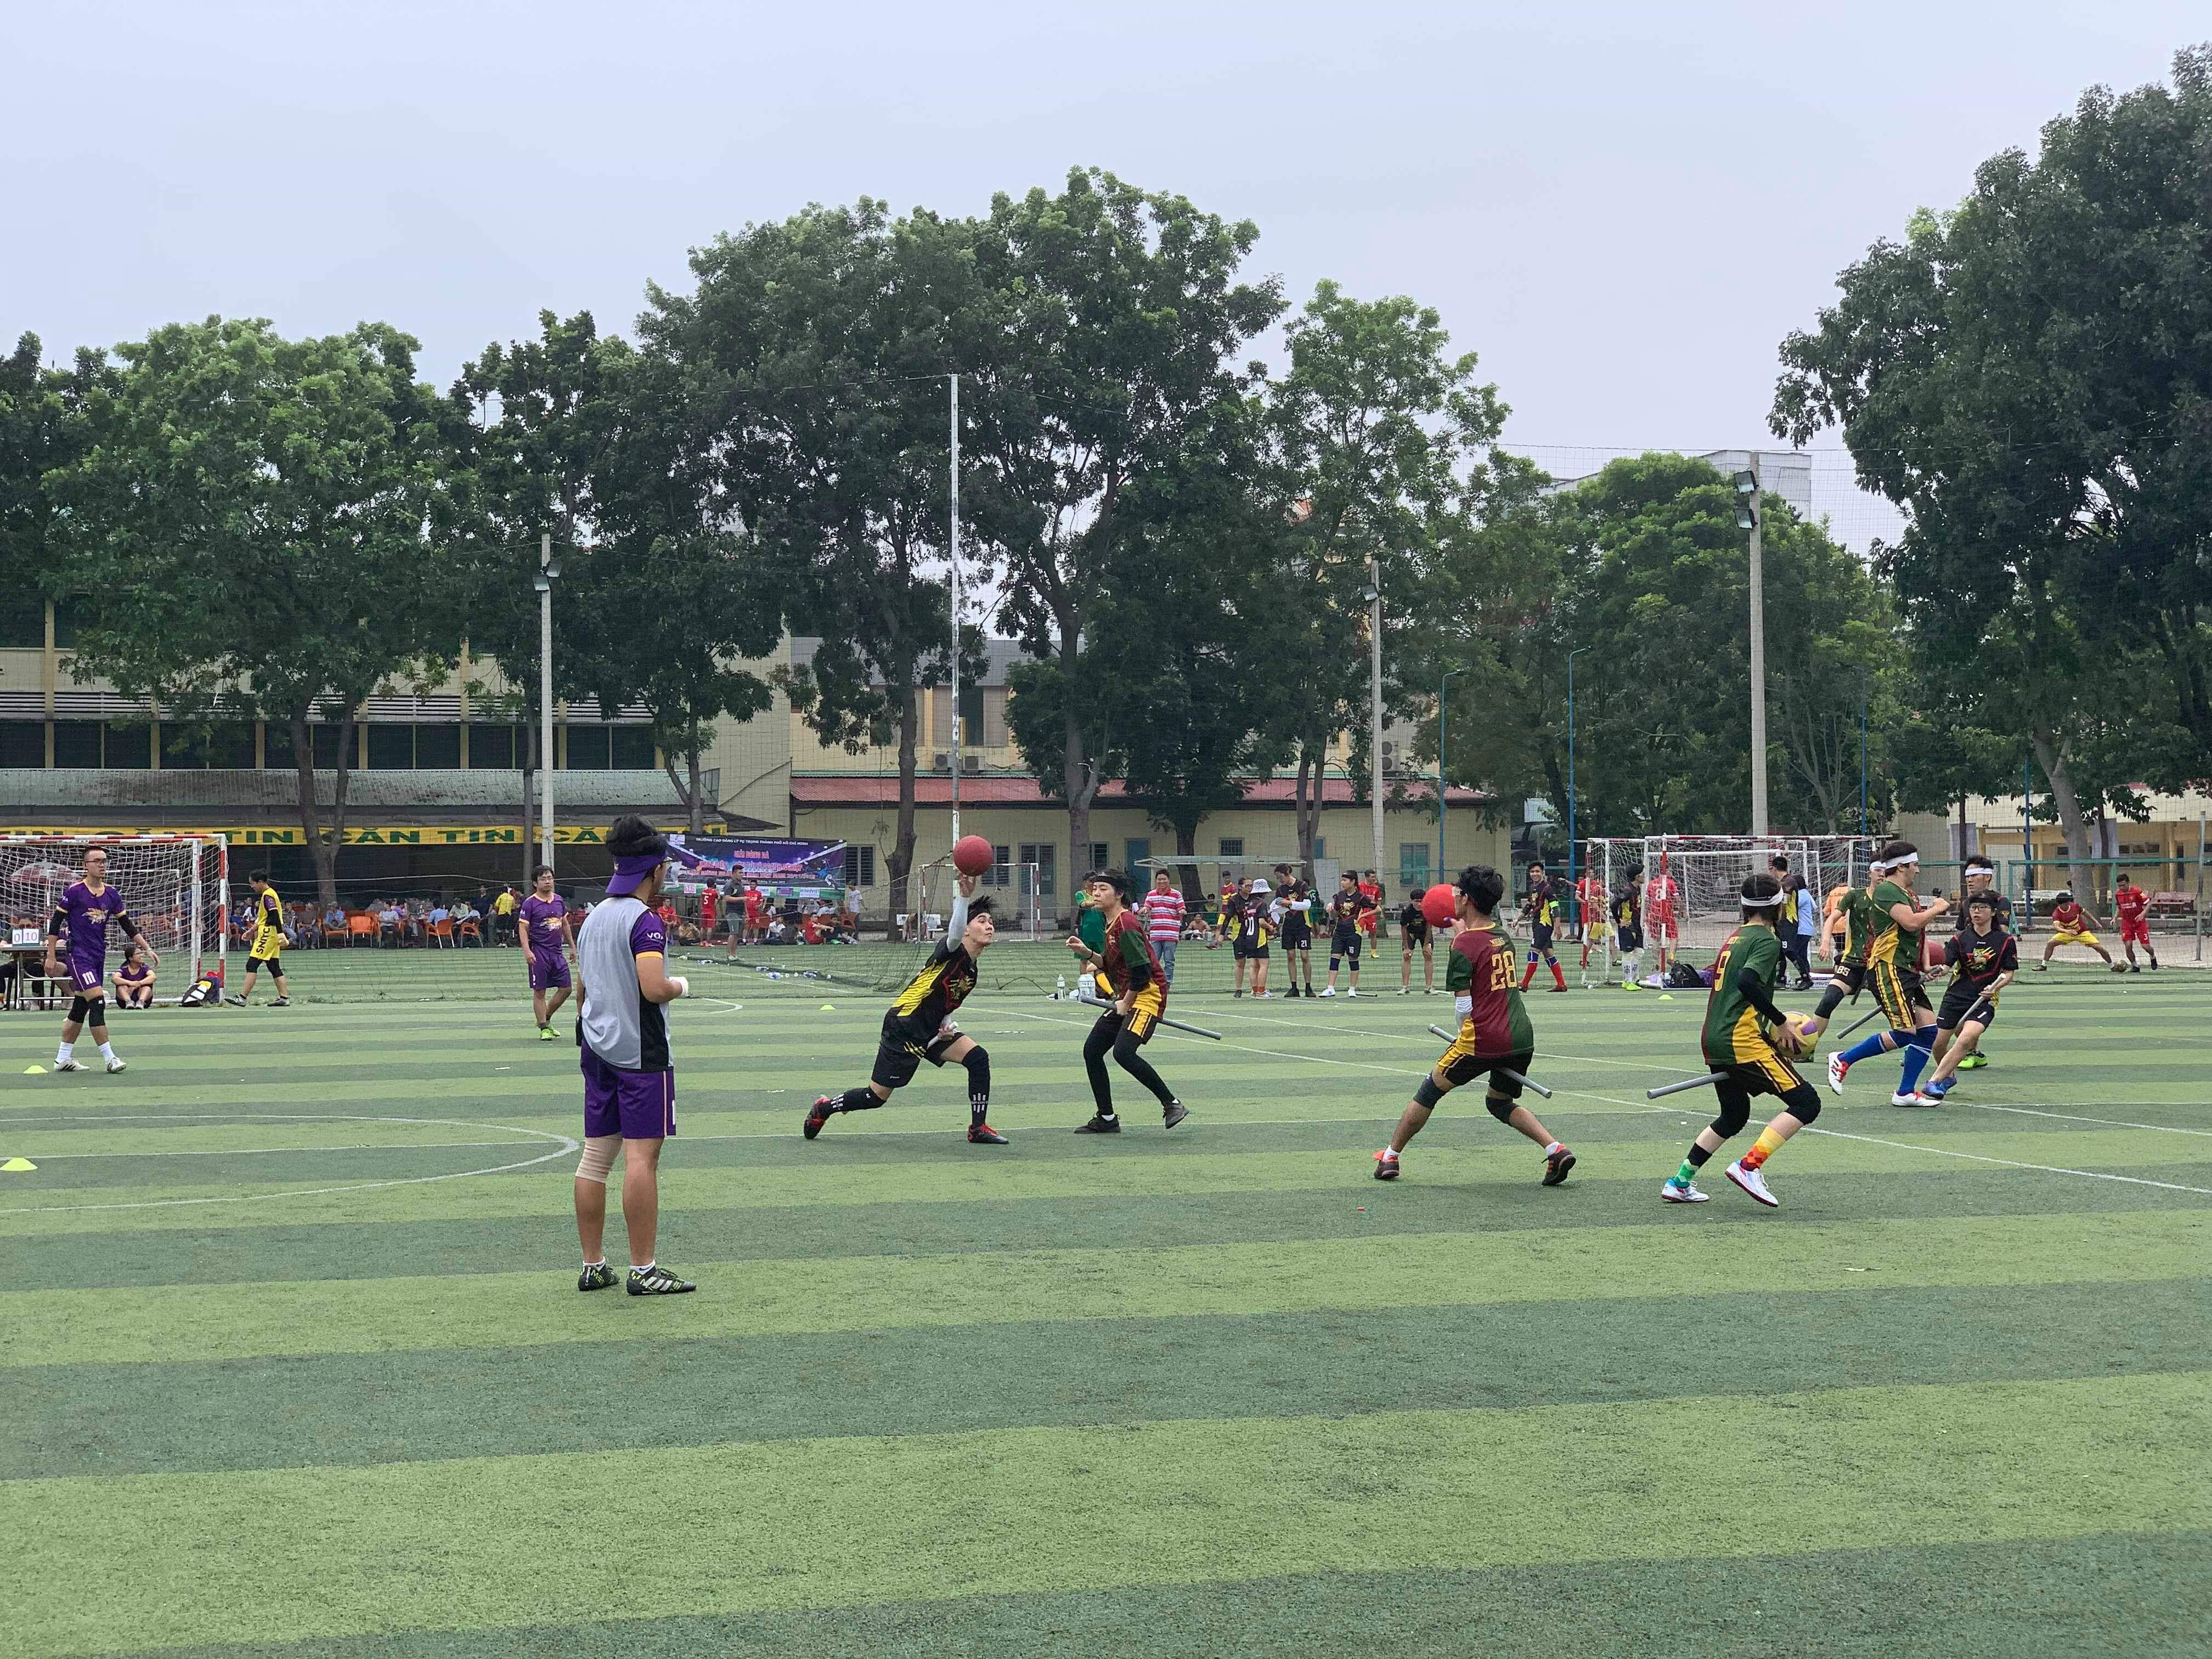 Two 'beaters' try to throw 'bludgers' at each other during a match in the maiden Vietnam Quidditch Cup organized by the Vietnam Quidditch Association  in Tan Binh District, Ho Chi Minh City, November 10, 2019 in this provided photo